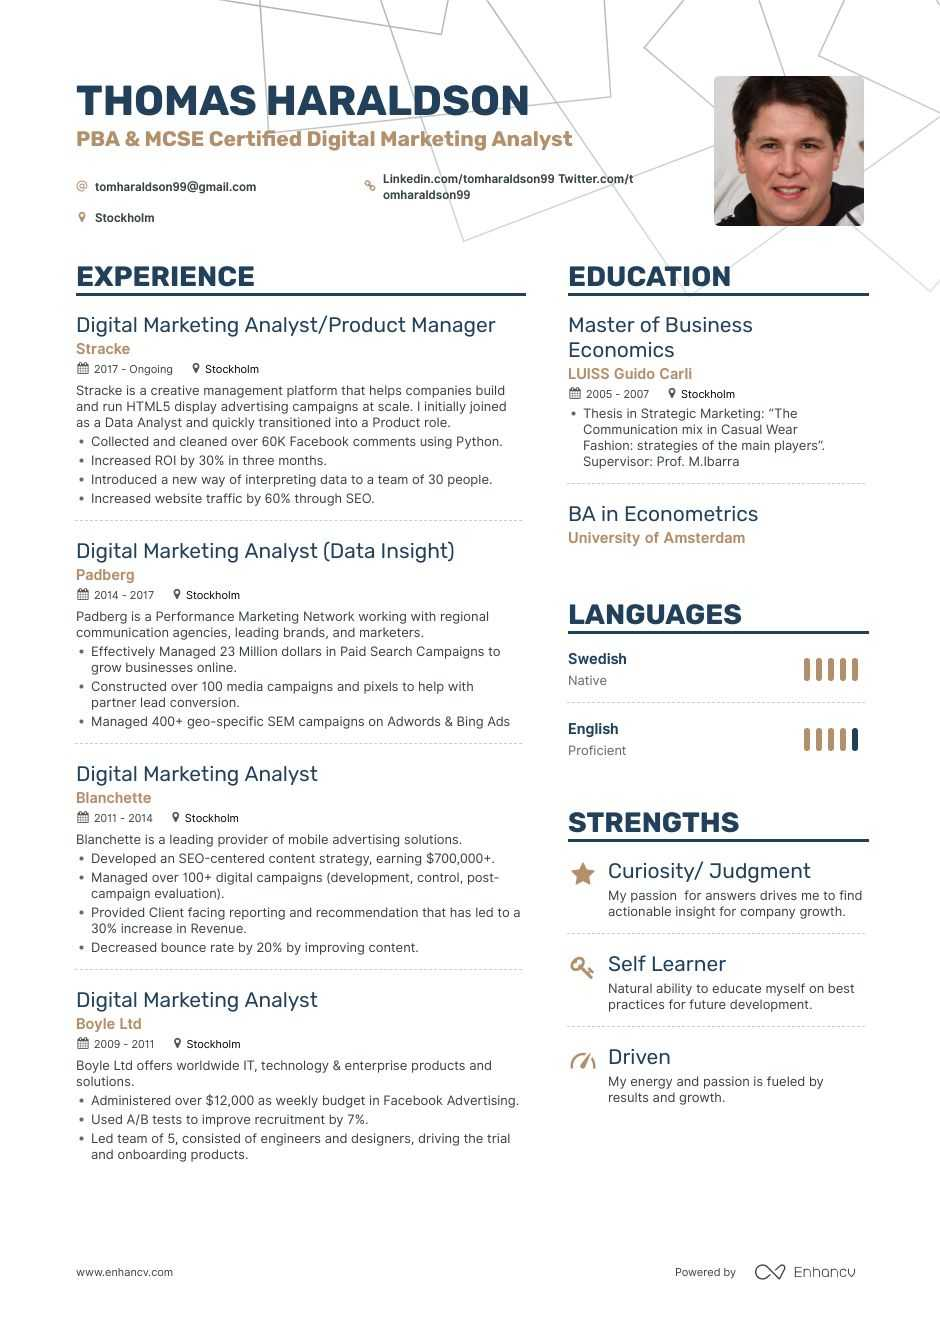 digital marketing analyst resume example